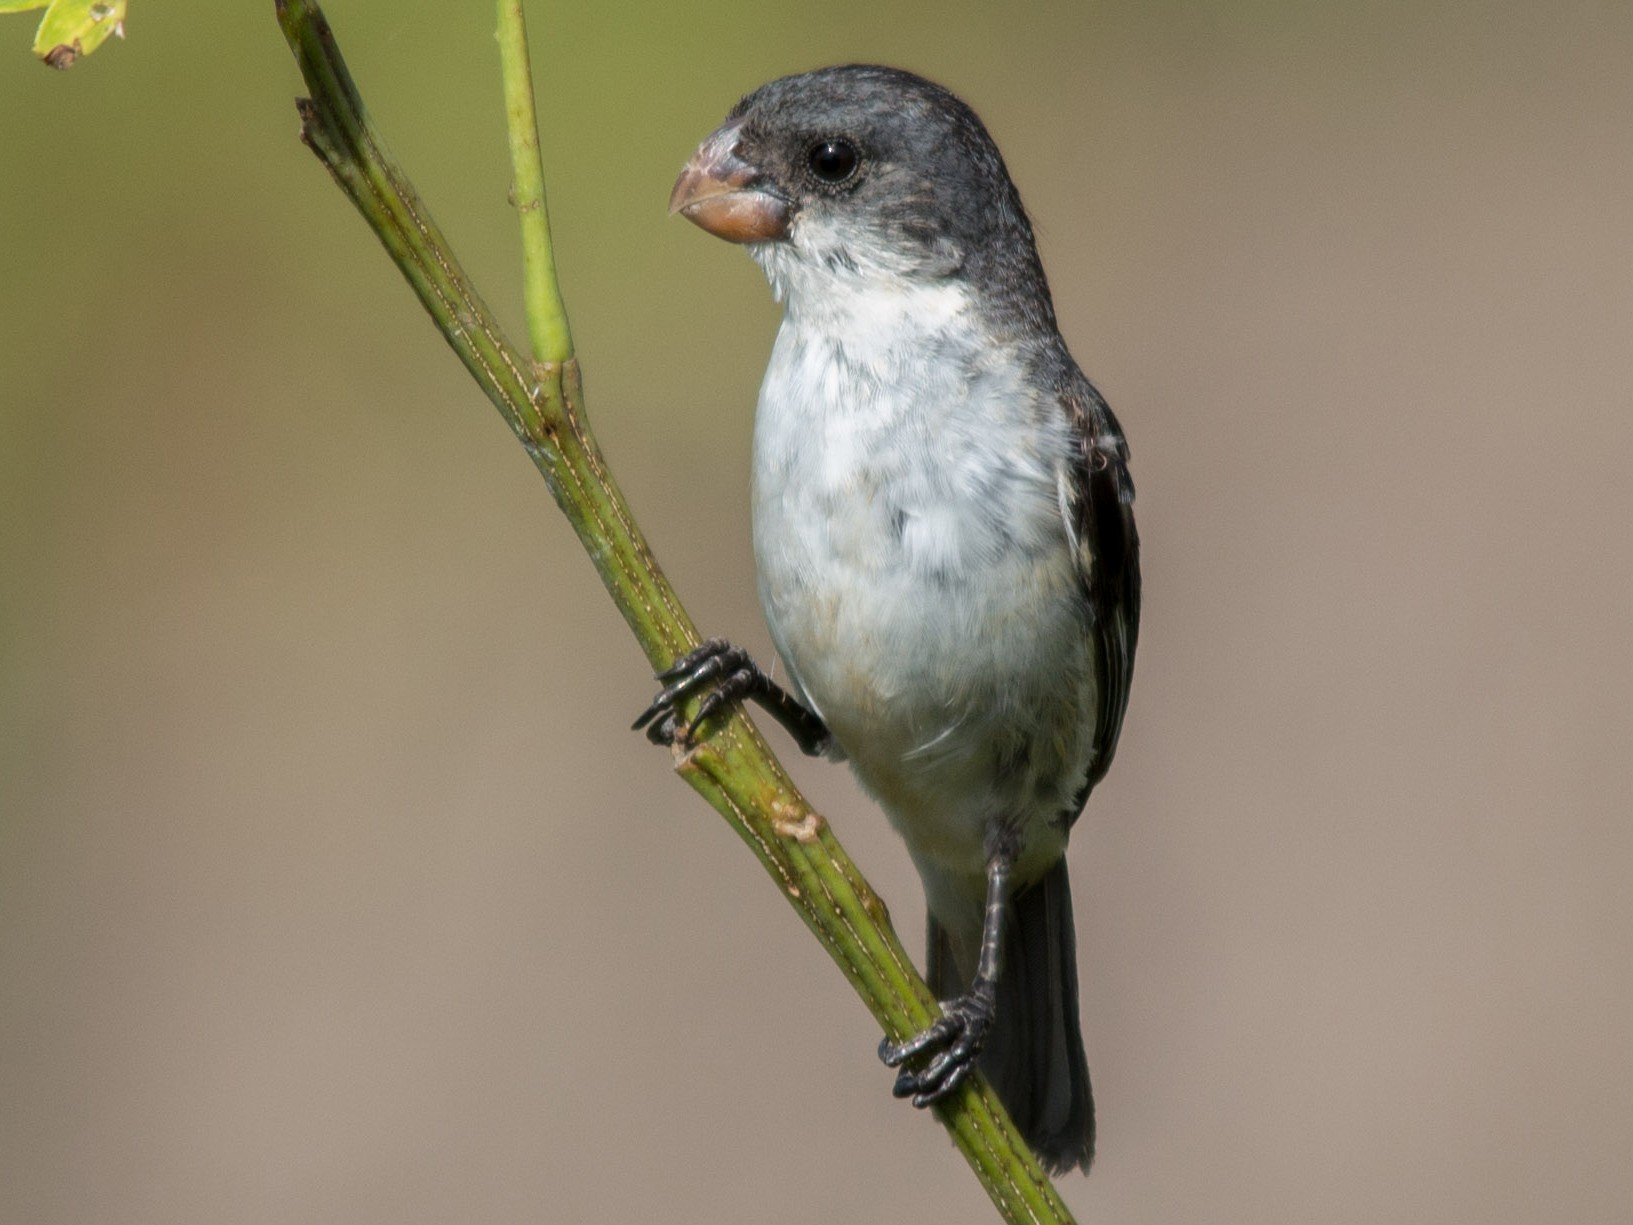 White-bellied Seedeater - João Vitor Perin Andriola